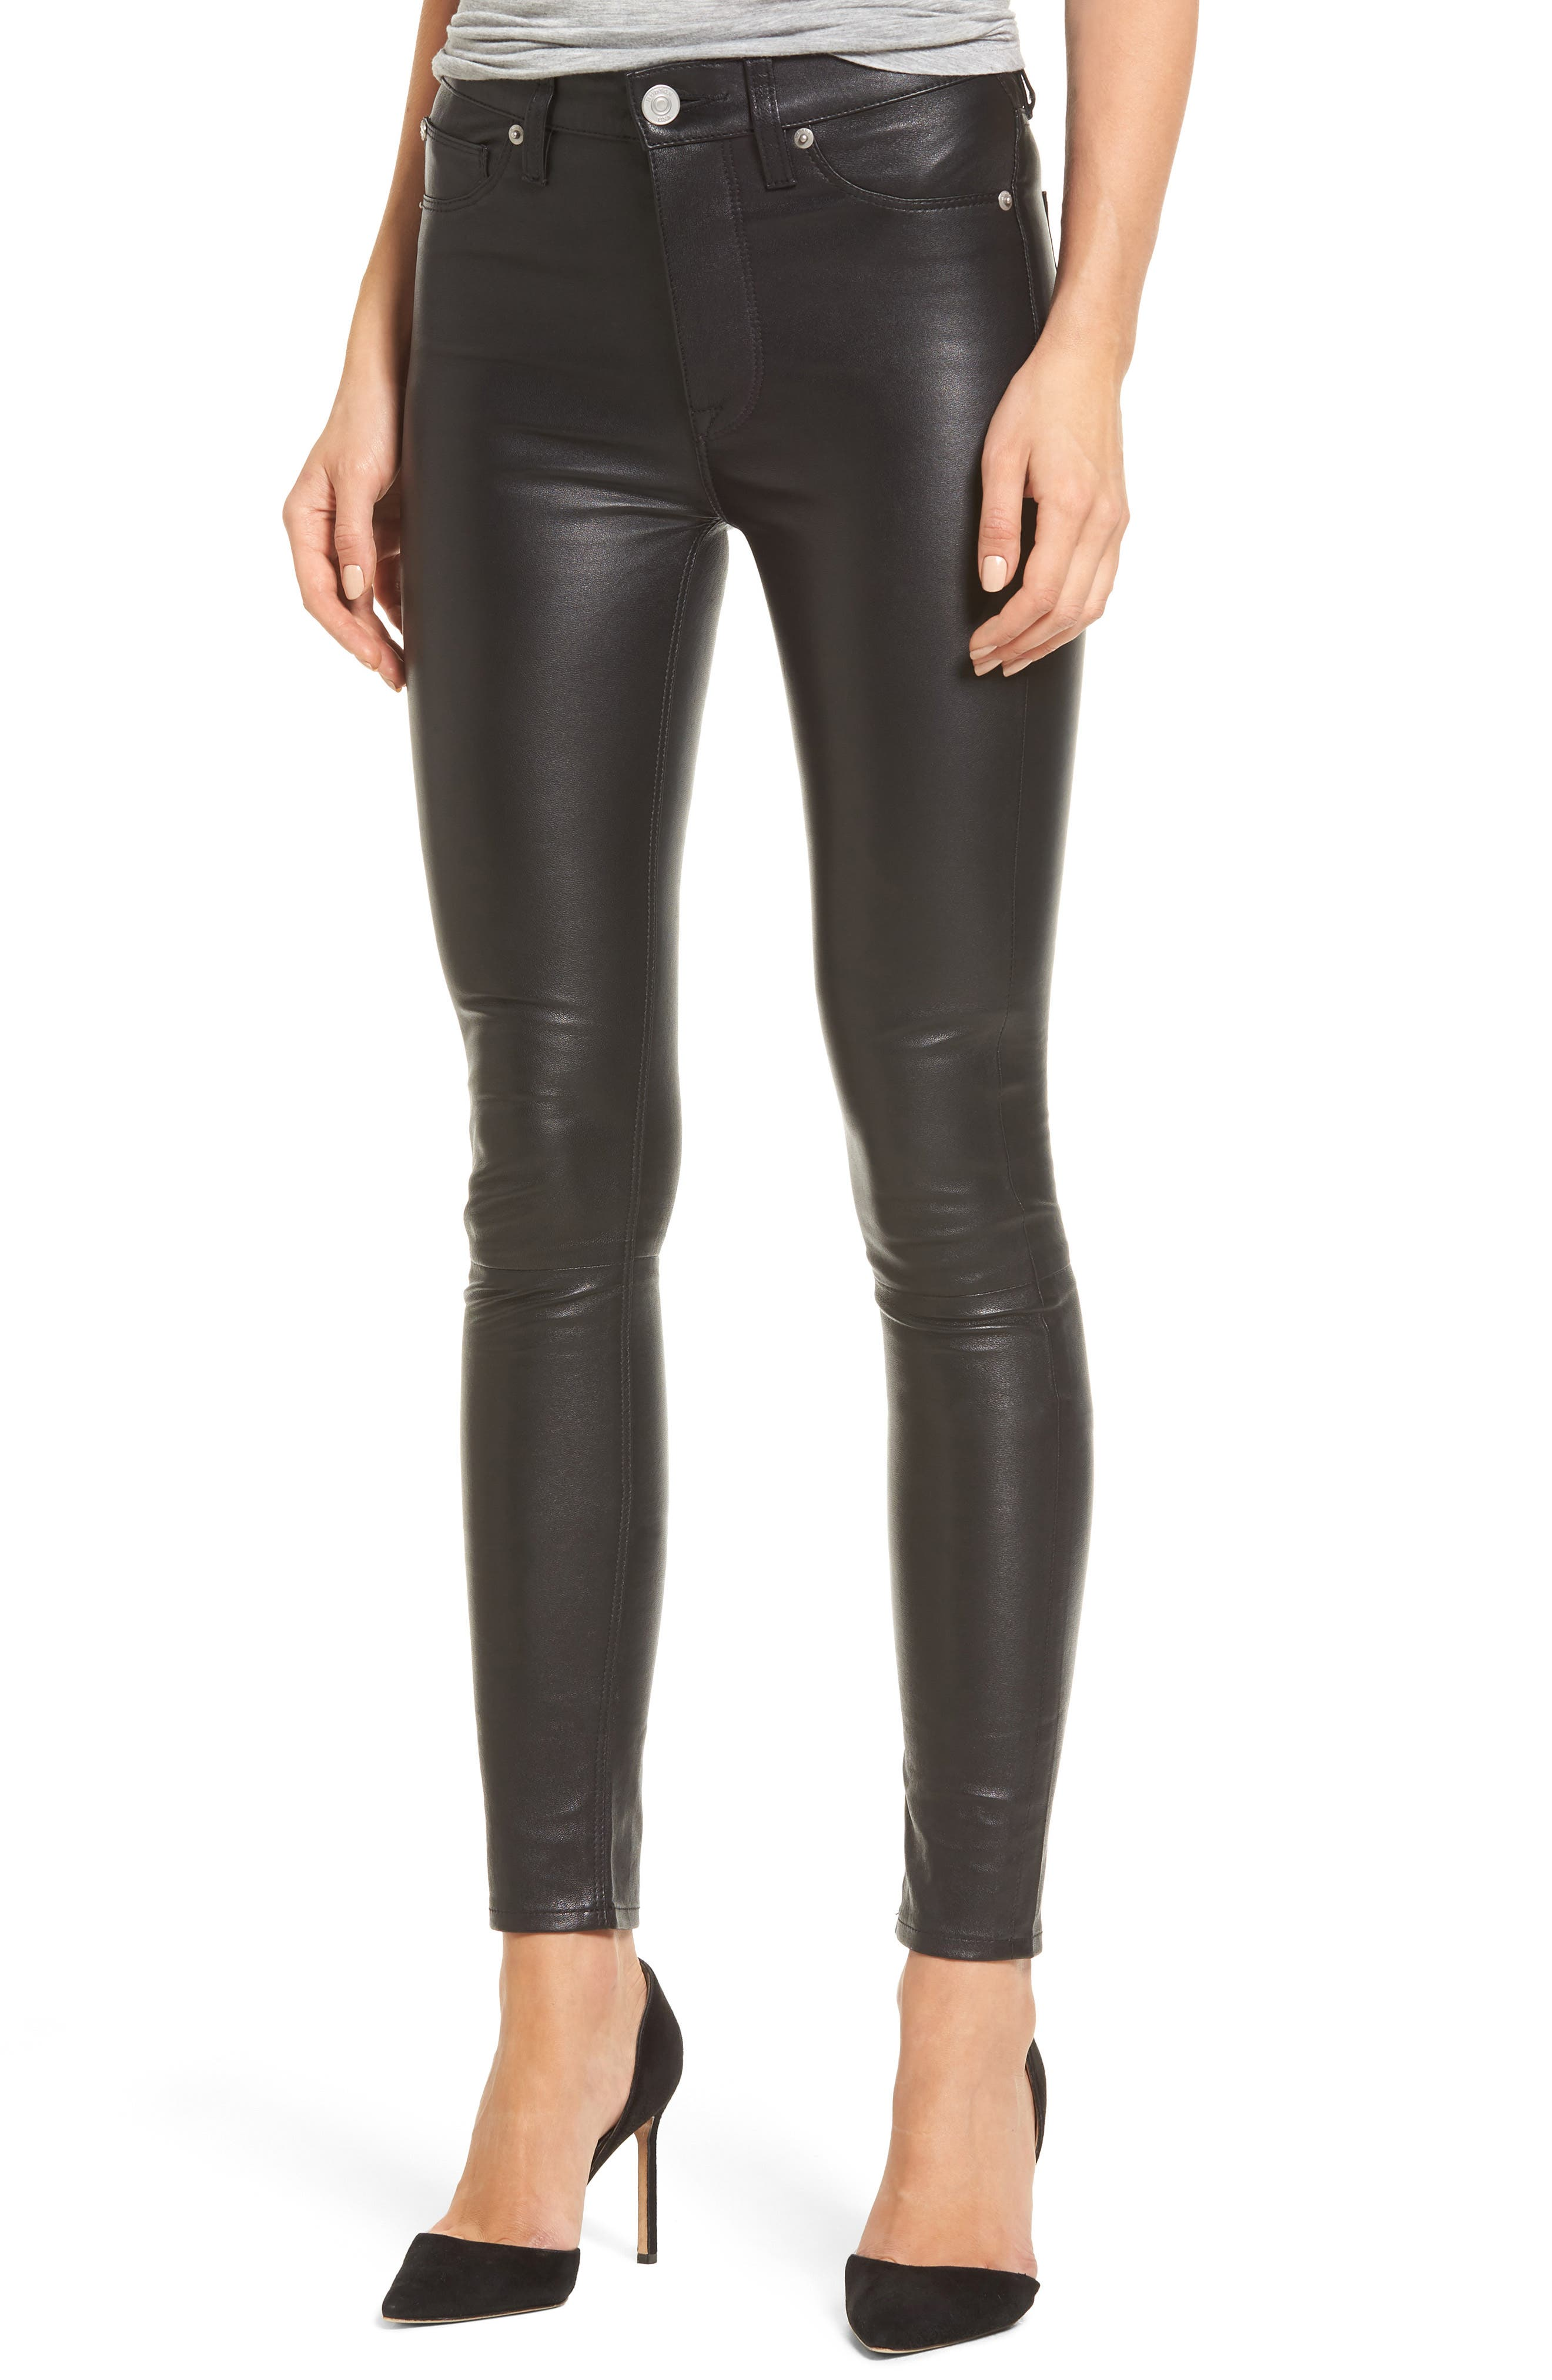 Barbara High Waist Ankle Skinny Leather Pants,                             Main thumbnail 1, color,                             001